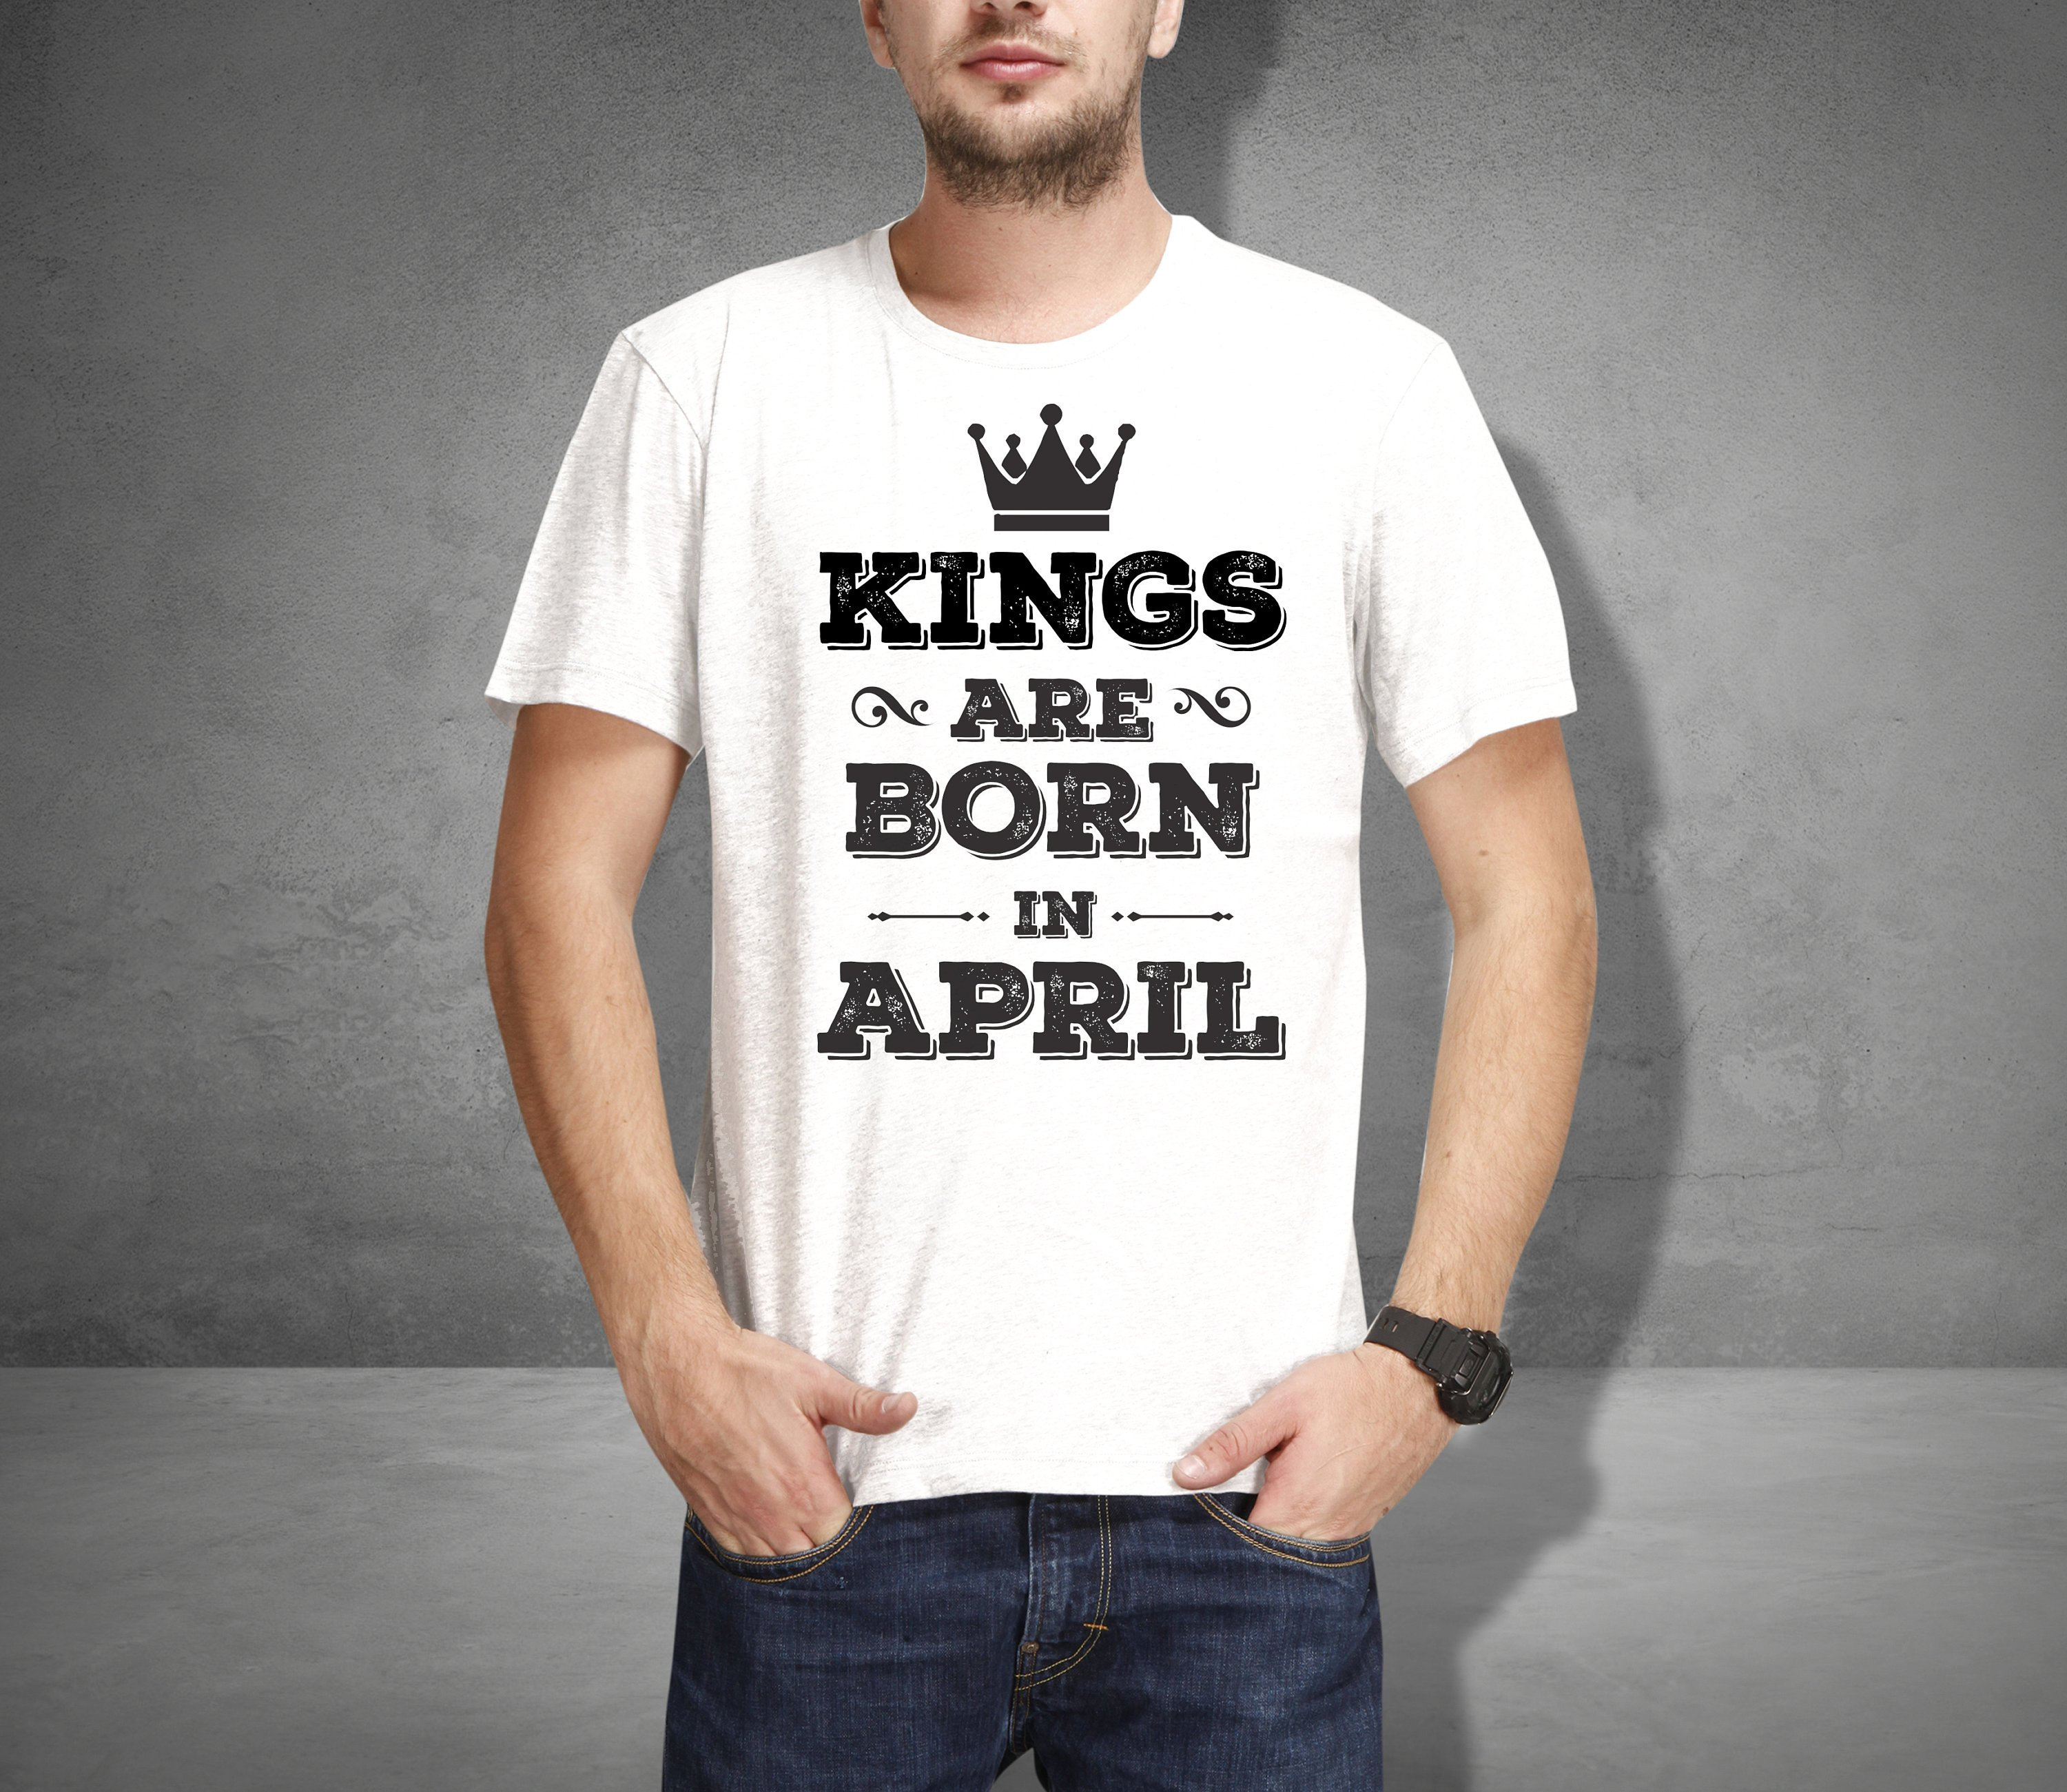 d6439ee30 Kings are born in April t shirt, ARIES ZODIAC birthday gift born in April,  Aries star sign horoscope design prints, Taurus birthday gift